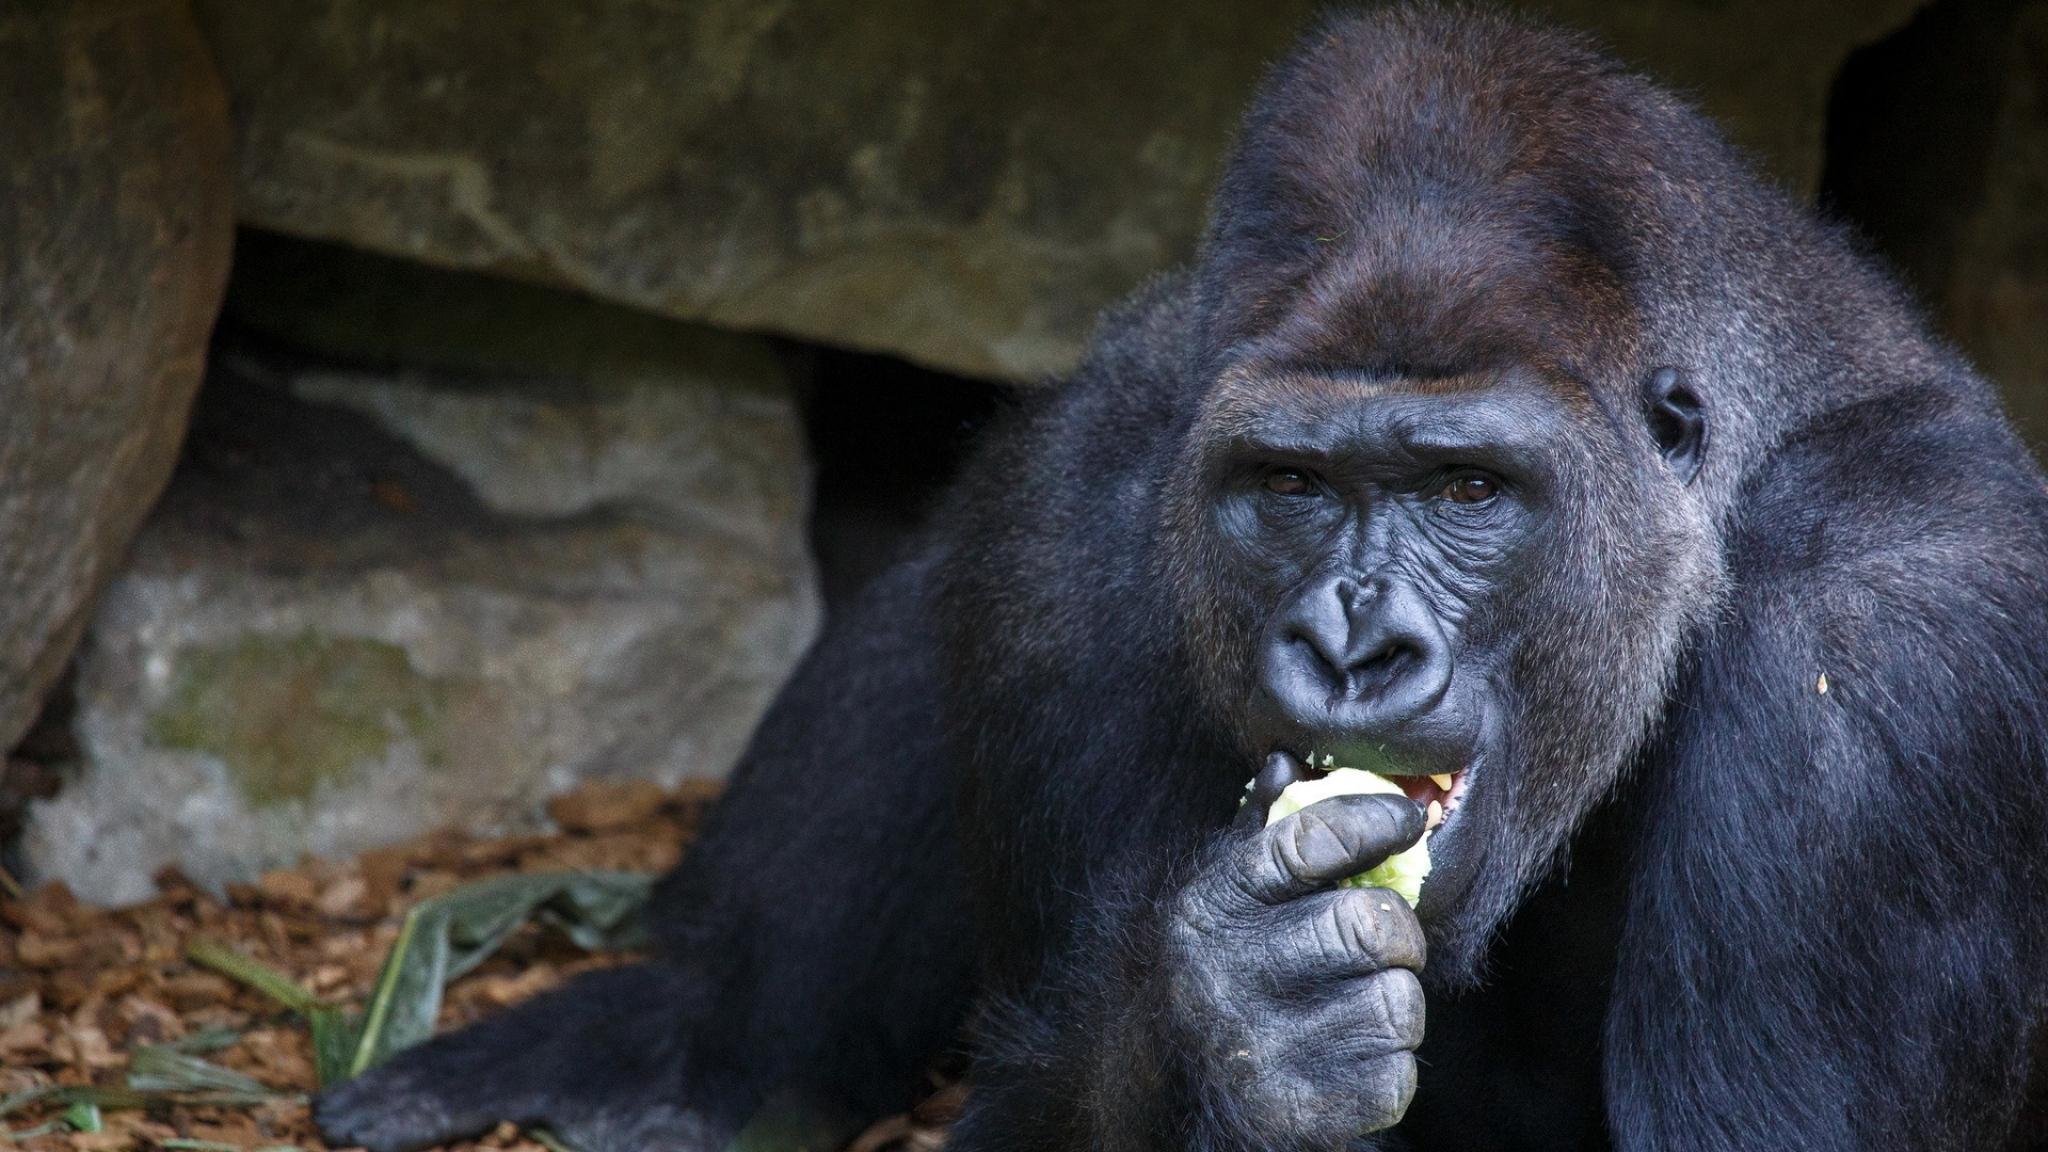 black gorilla eating desktop wallpaper 1068